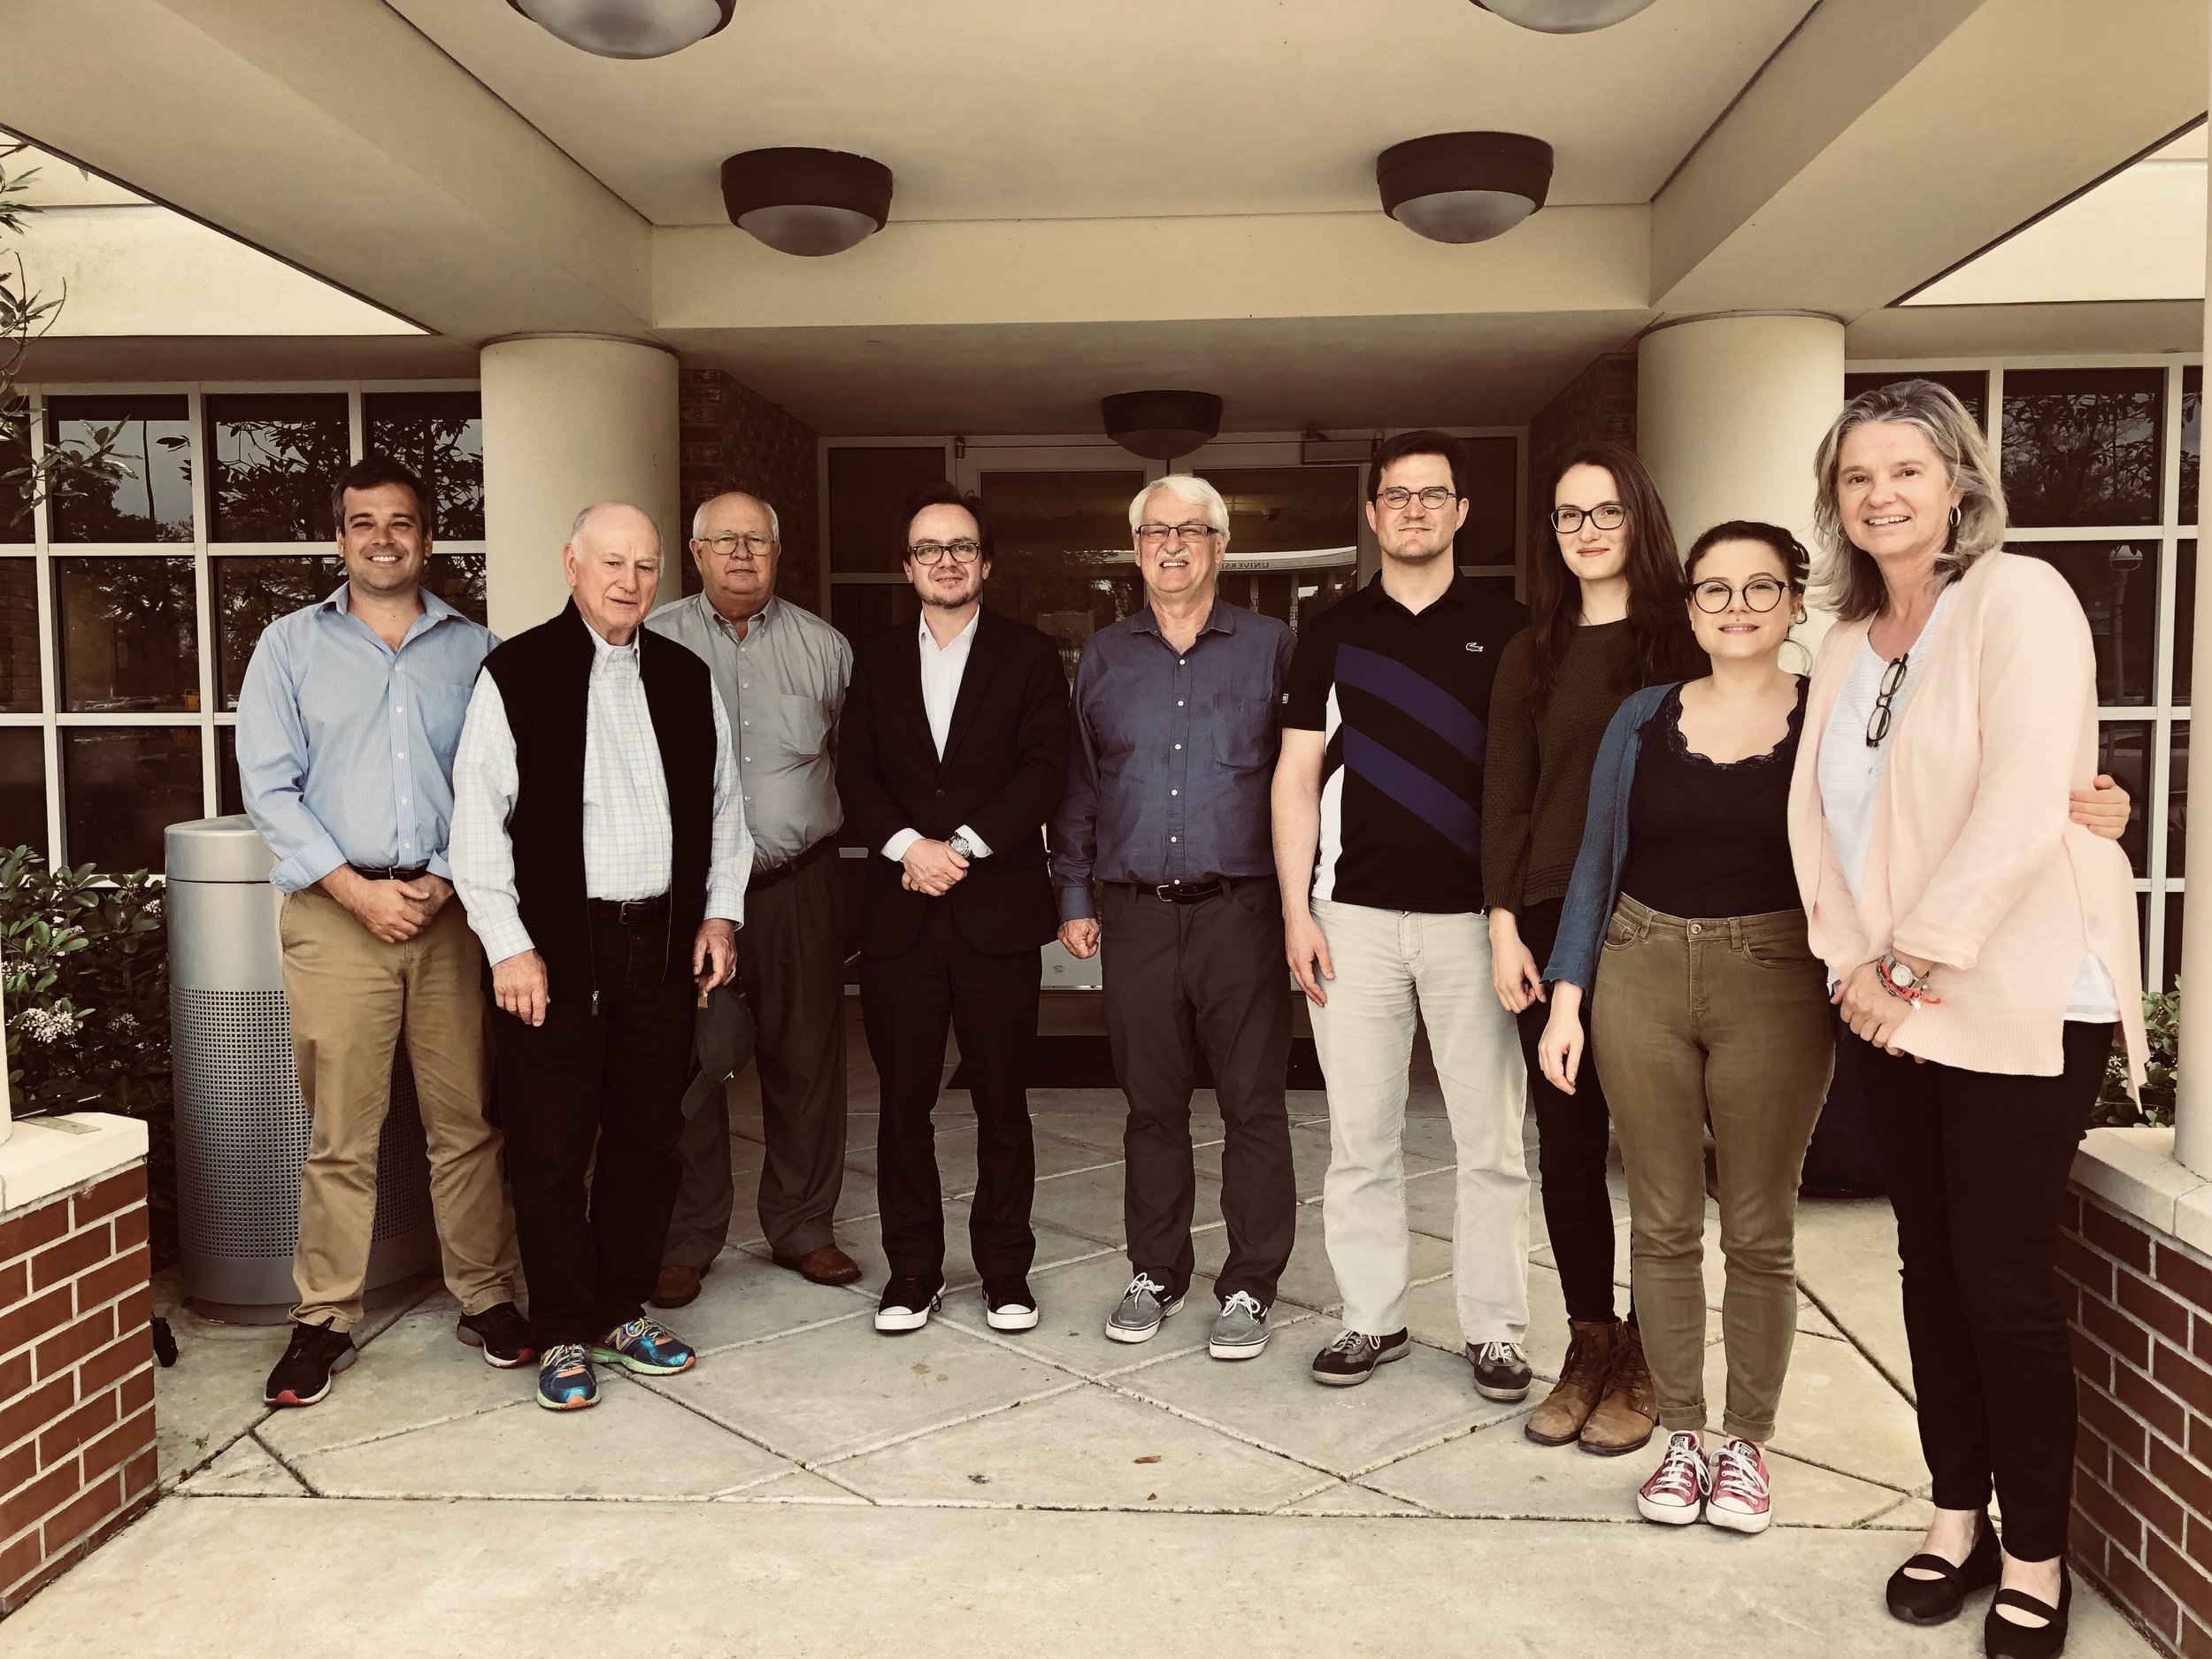 With faculty and graduate students: From left: Professor Marc Landry (Associate Director, Center Austria), Research Professor Emeritus Charles D. Hadley (political science), Professor Robert Dupont (history), Dr. Hannes Richter (Embassy of Austria), Professor Günter Bischof (Director, Center Austria), Vicko Marelic (Austrian Federal Ministry for Science, Research & Economics Fellow), Raphaela Fischnaller (Center Austria Fellow) Irina Pavlovic (Nick Mueller Fellow), Gertraud Griessner (Project Manager, Center Austria).